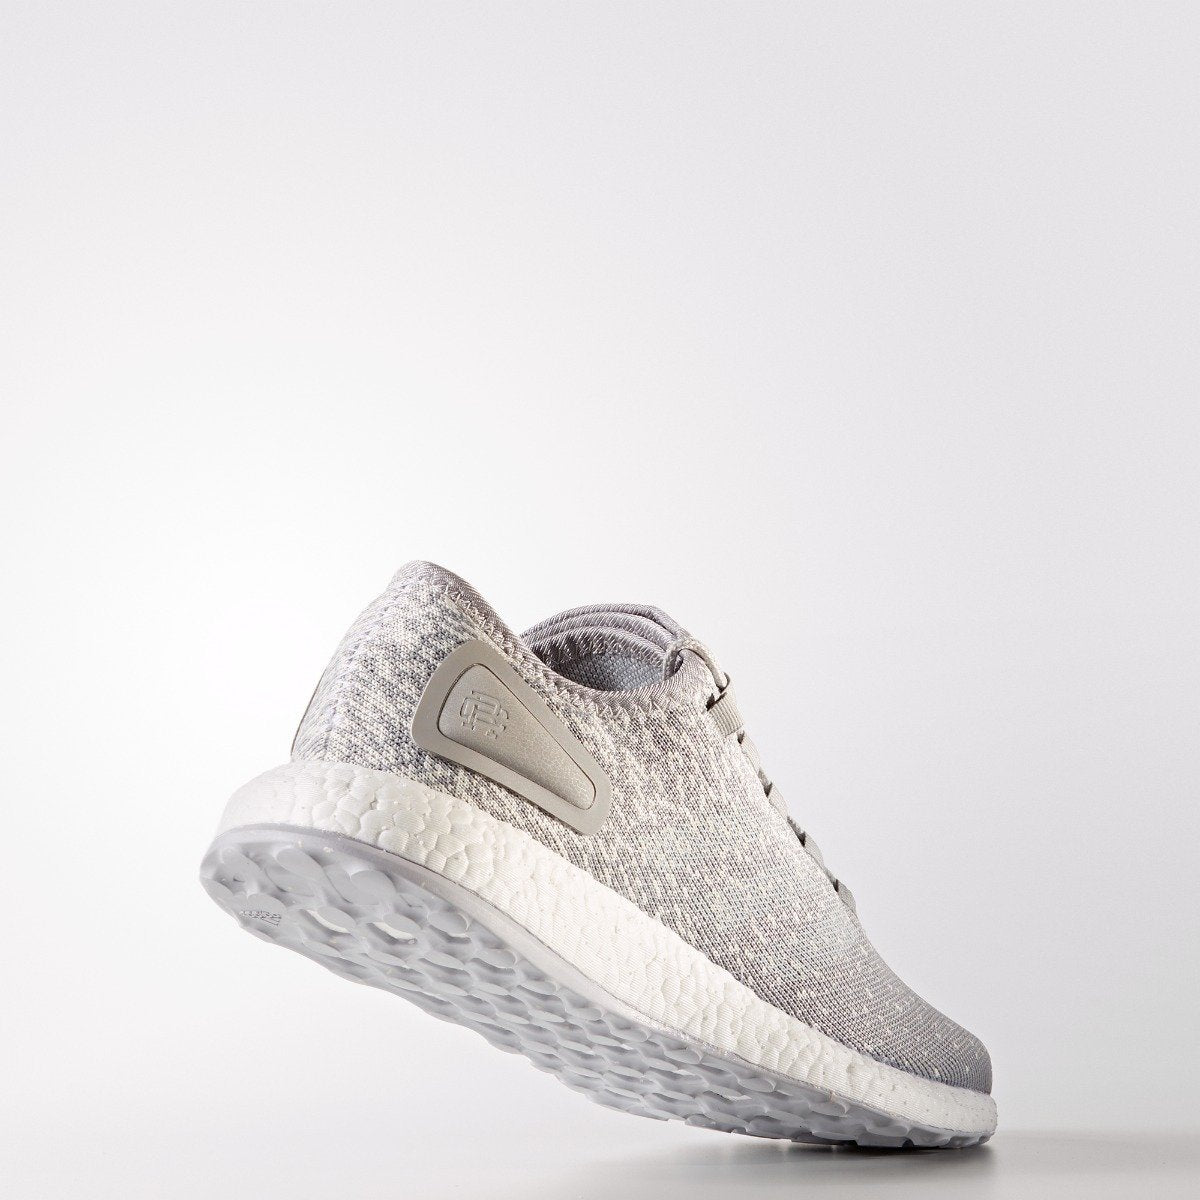 57435ccd03ff8 Men s adidas x Reigning Champ PureBOOST Shoes Grey CG5330